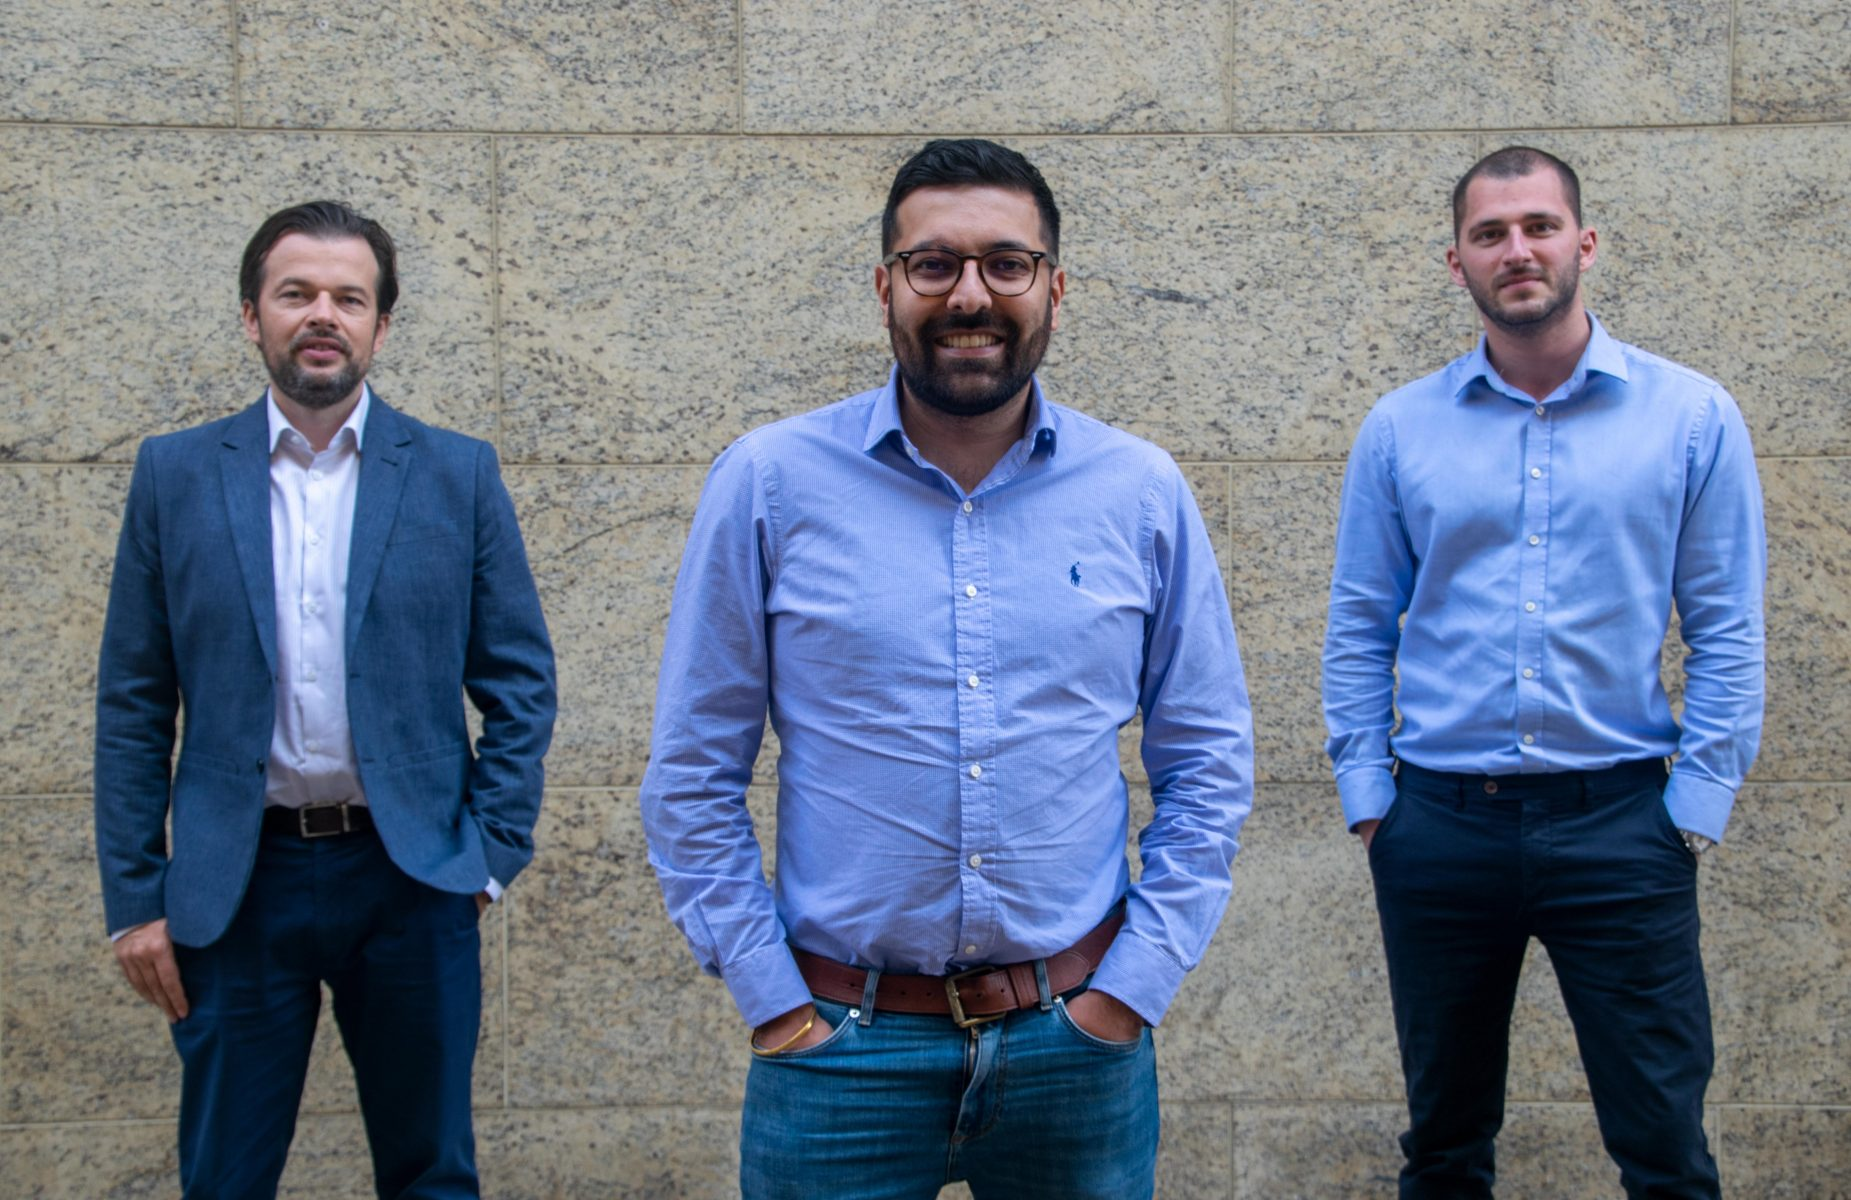 SEVENHOMES EXPANDS LAND TEAM WITH THREE APPOINTMENTS